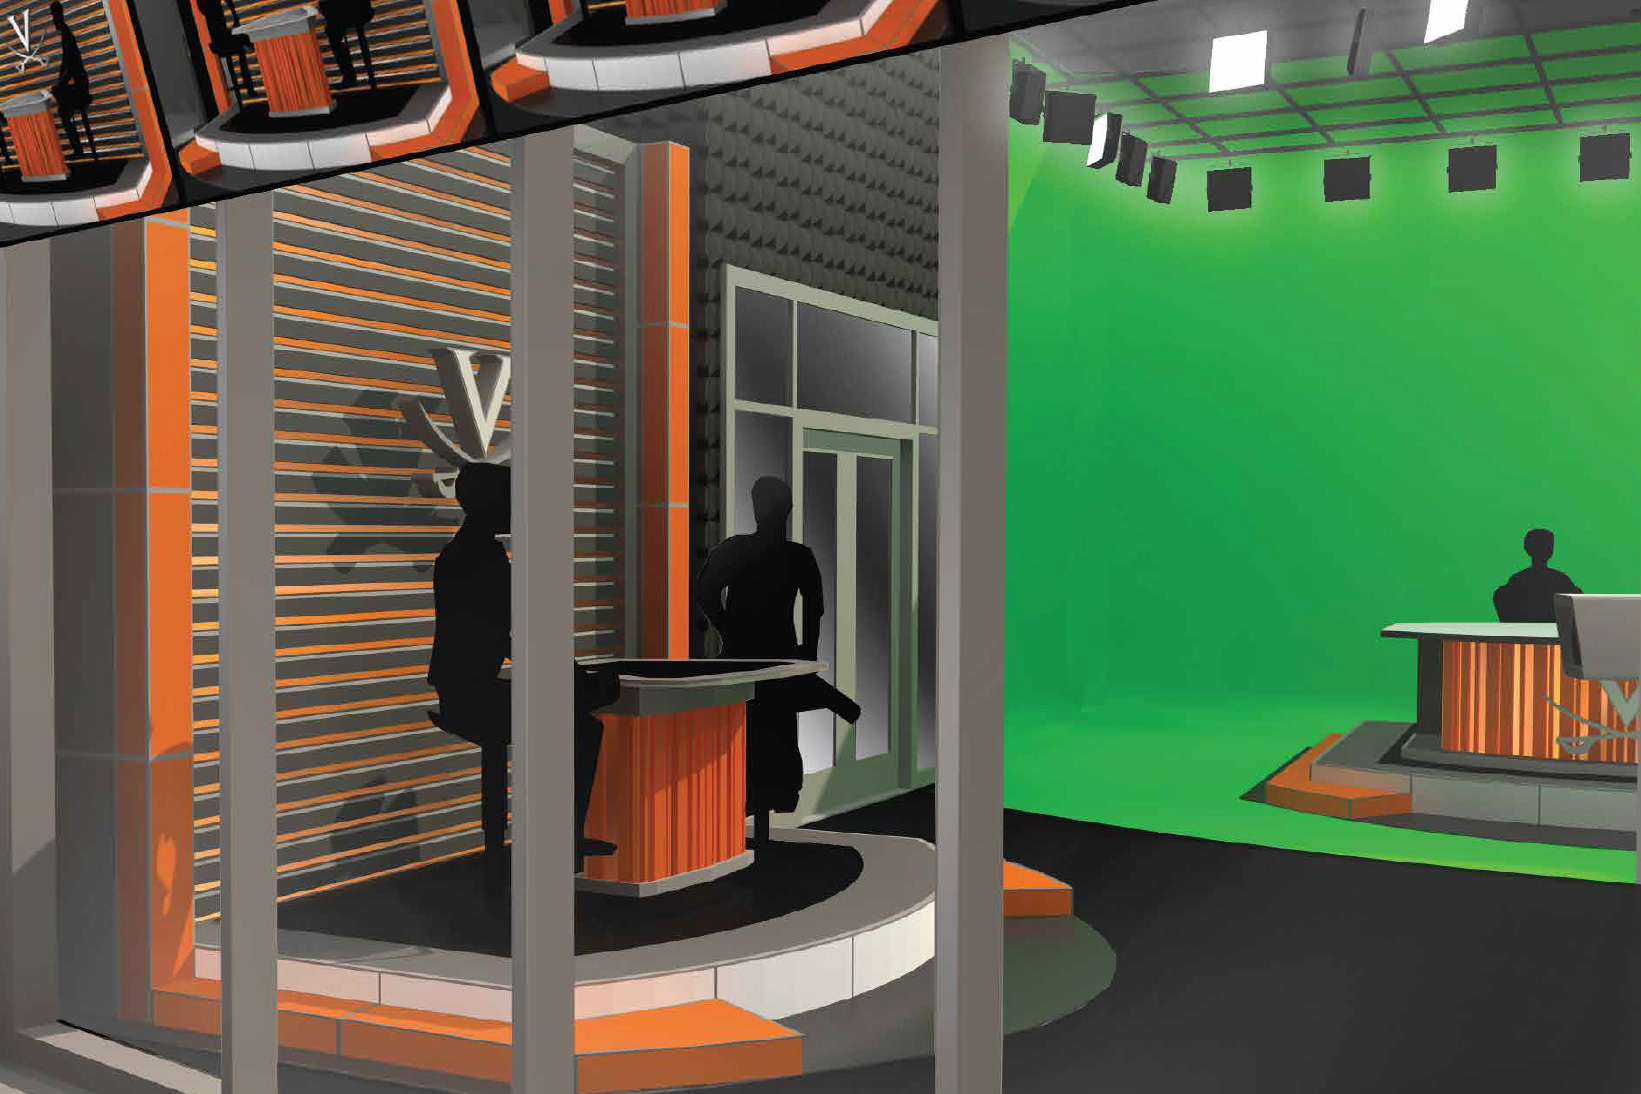 The former Cavalier Team Shop at John Paul Jones Arena is being repurposed into a broadcast studio that will get plenty of use. (Illustration courtesy UVA Athletics)